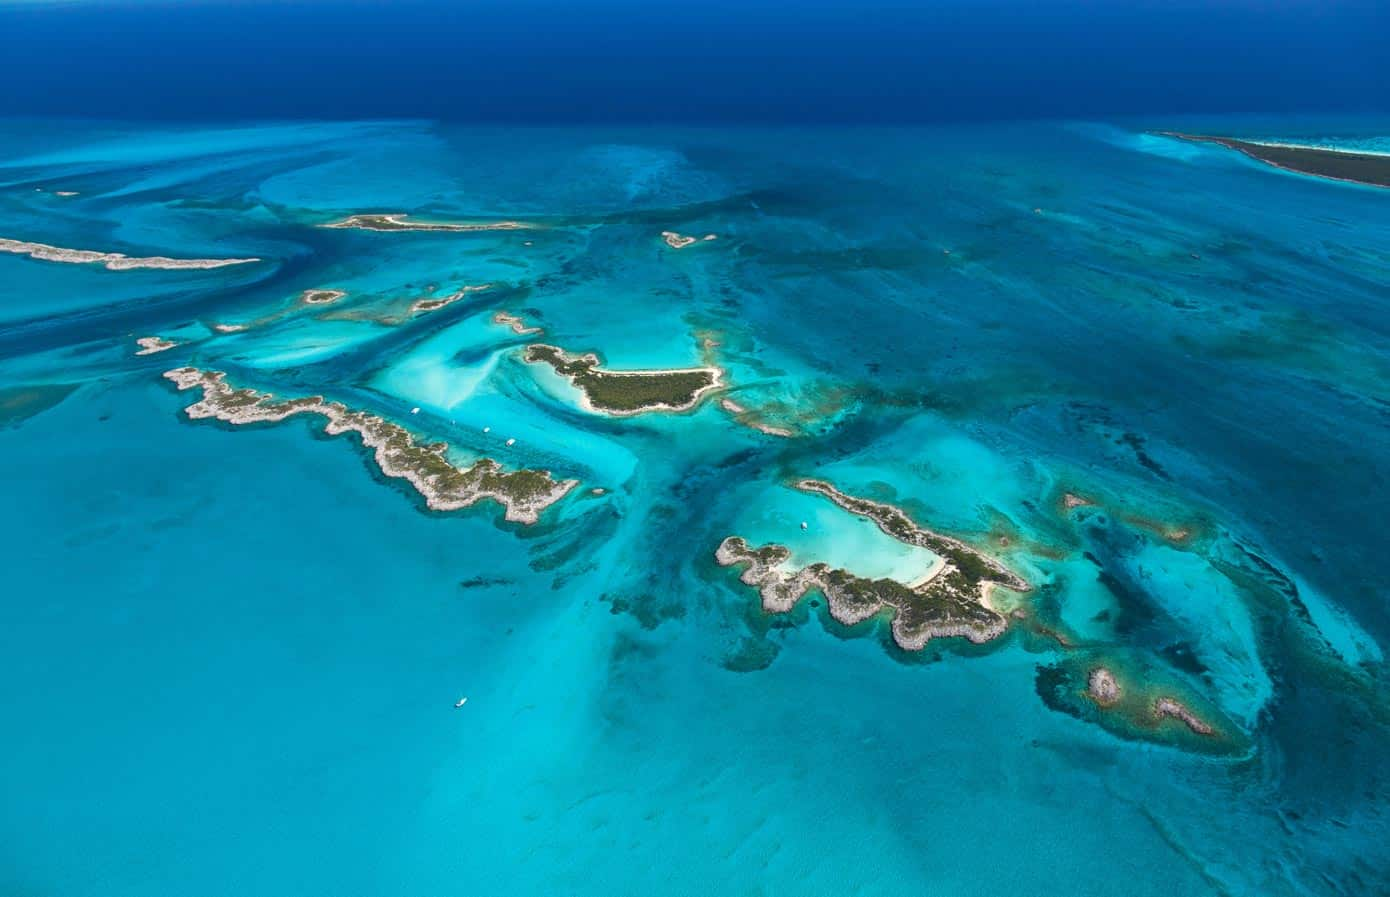 Aerial view of stunning beaches, islands, and ocean in the Bahamas.